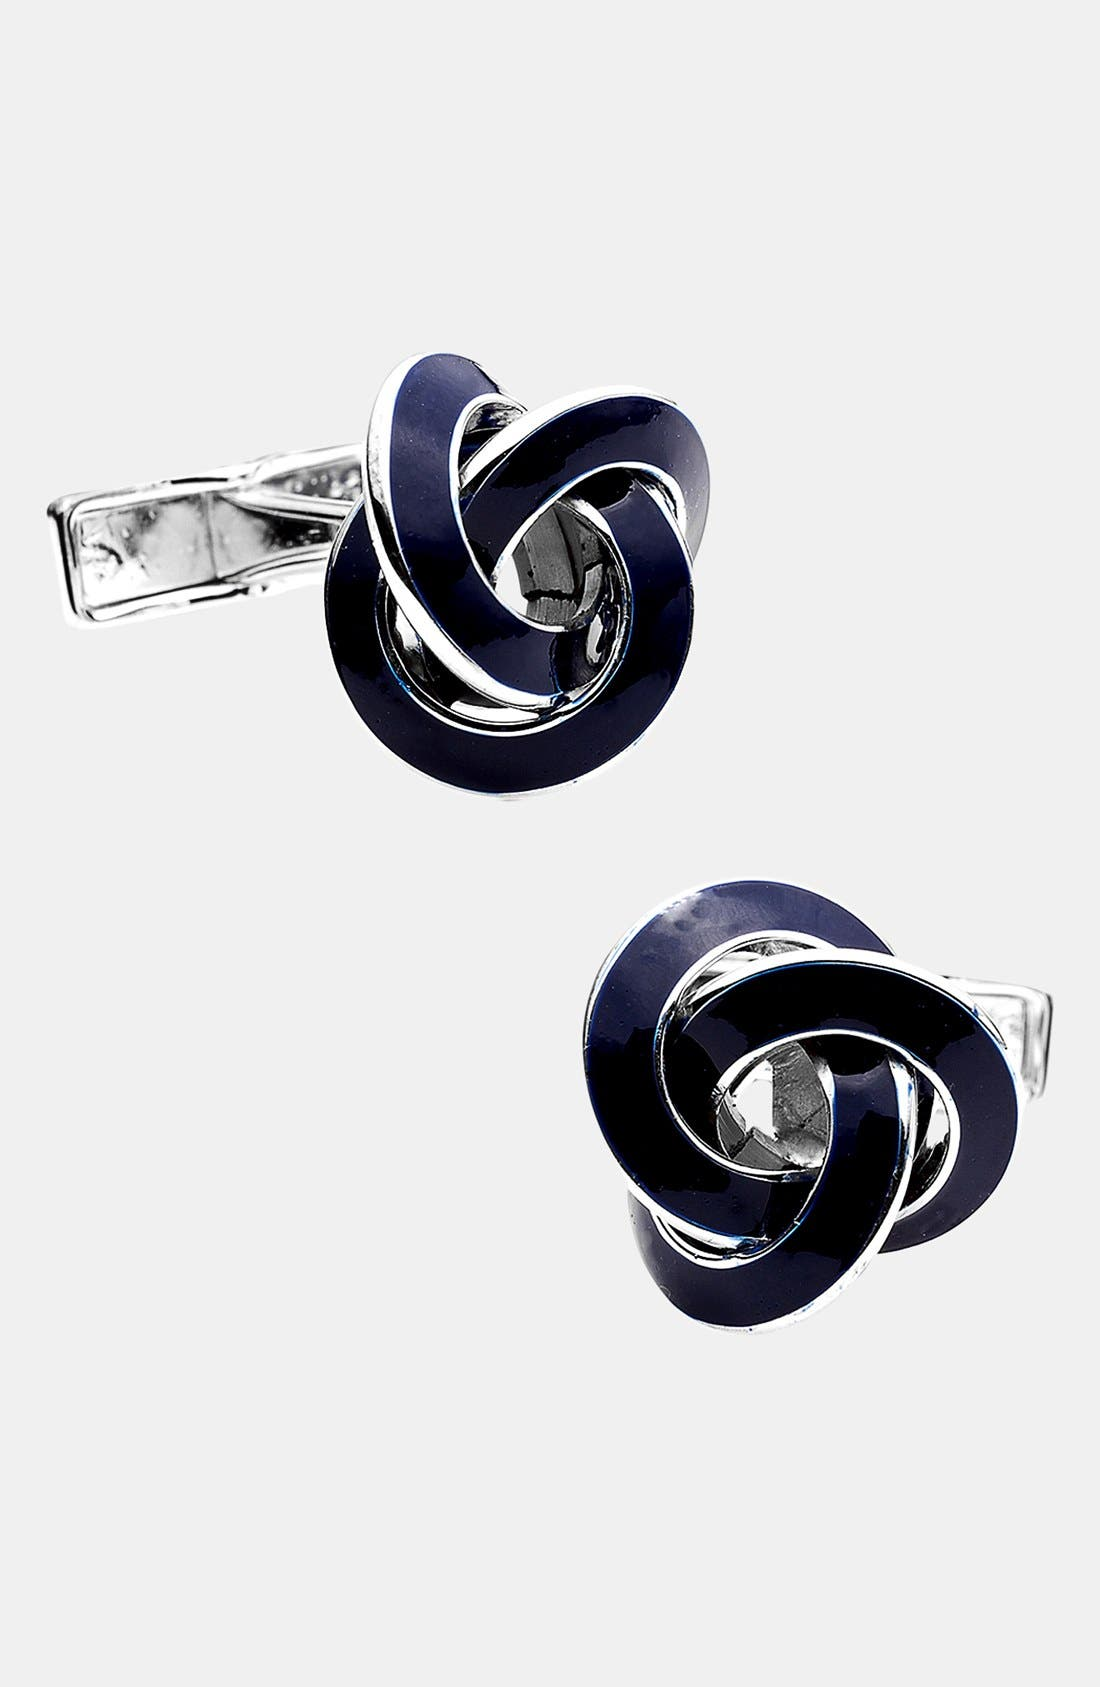 Main Image - Ravi Ratan 'Knot' Cuff Links